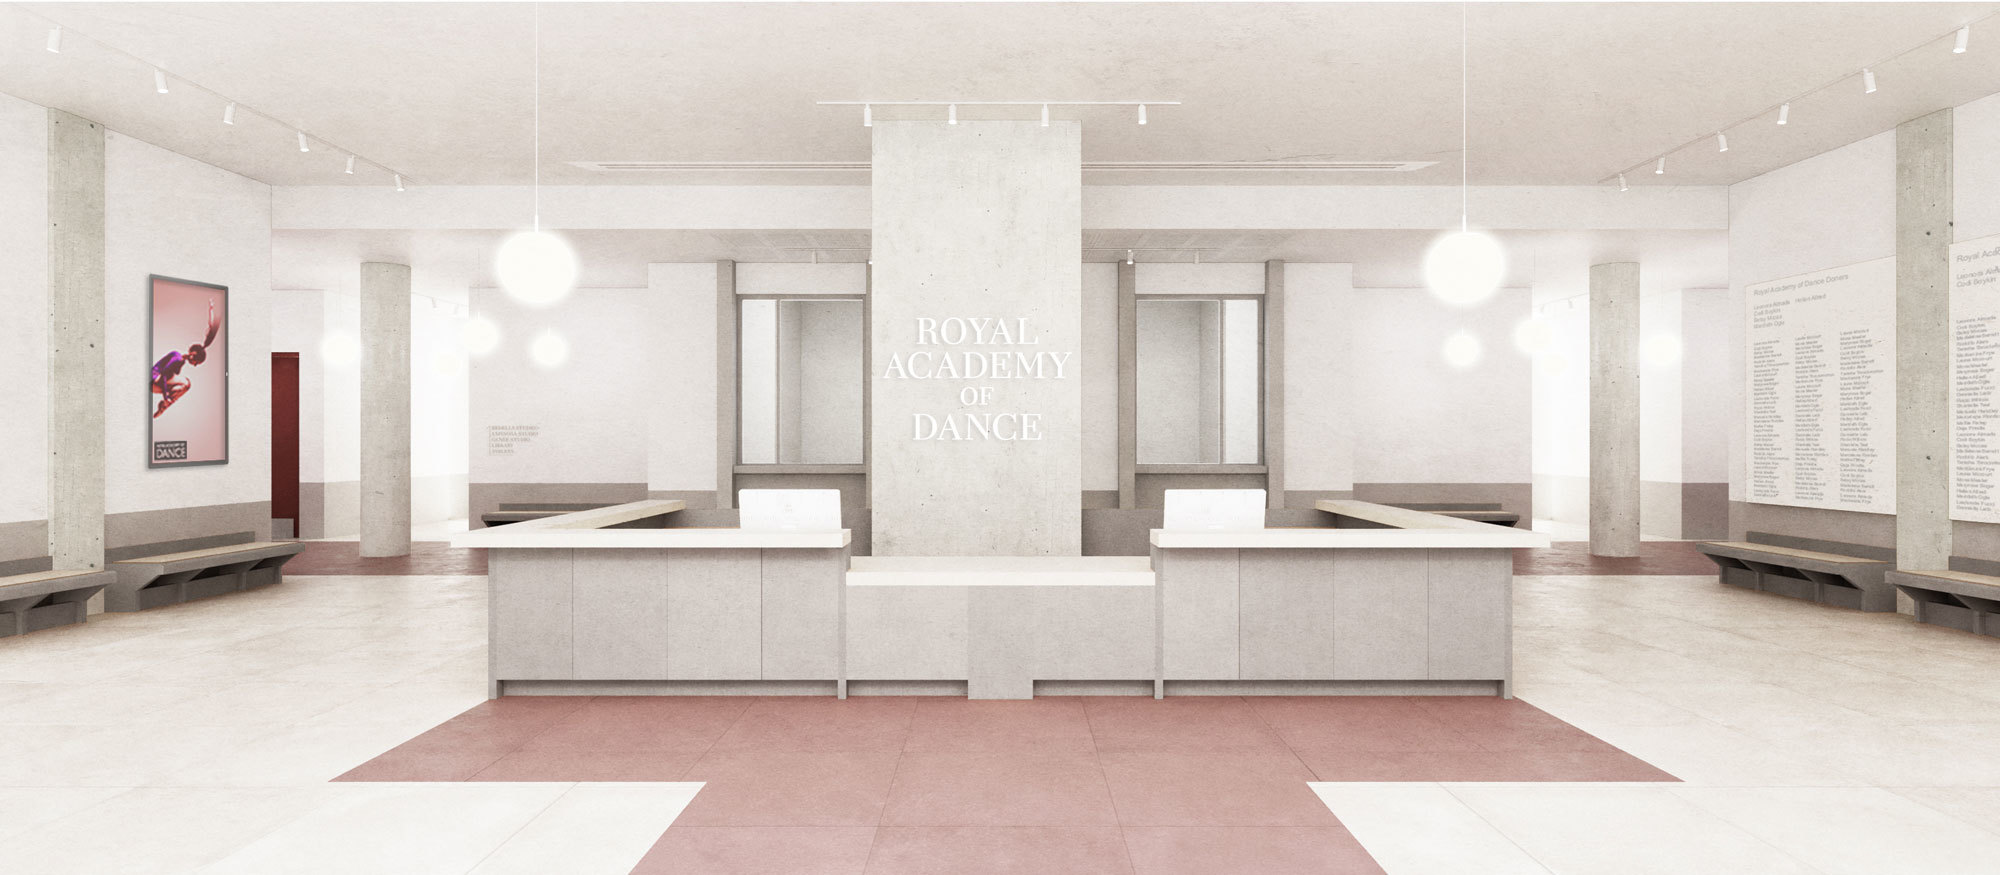 Royal Academy of Dance, London